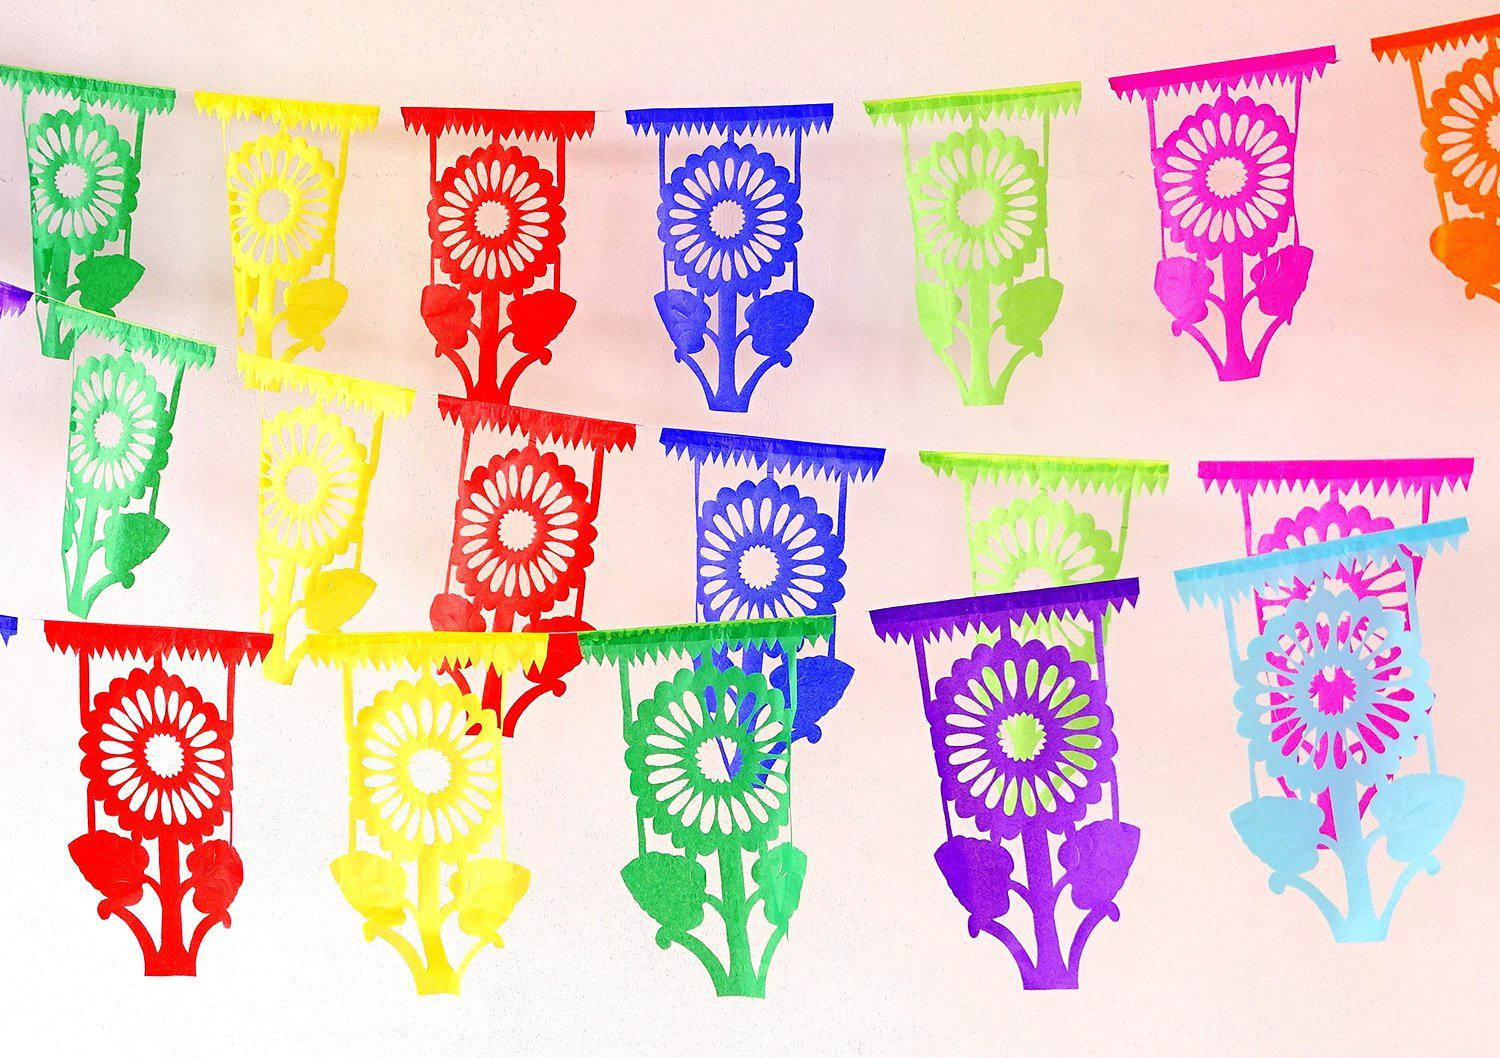 5 Pk Floral Cinco de Mayo Decorations, Papel Picado Banners Over 45ft long FLOR10